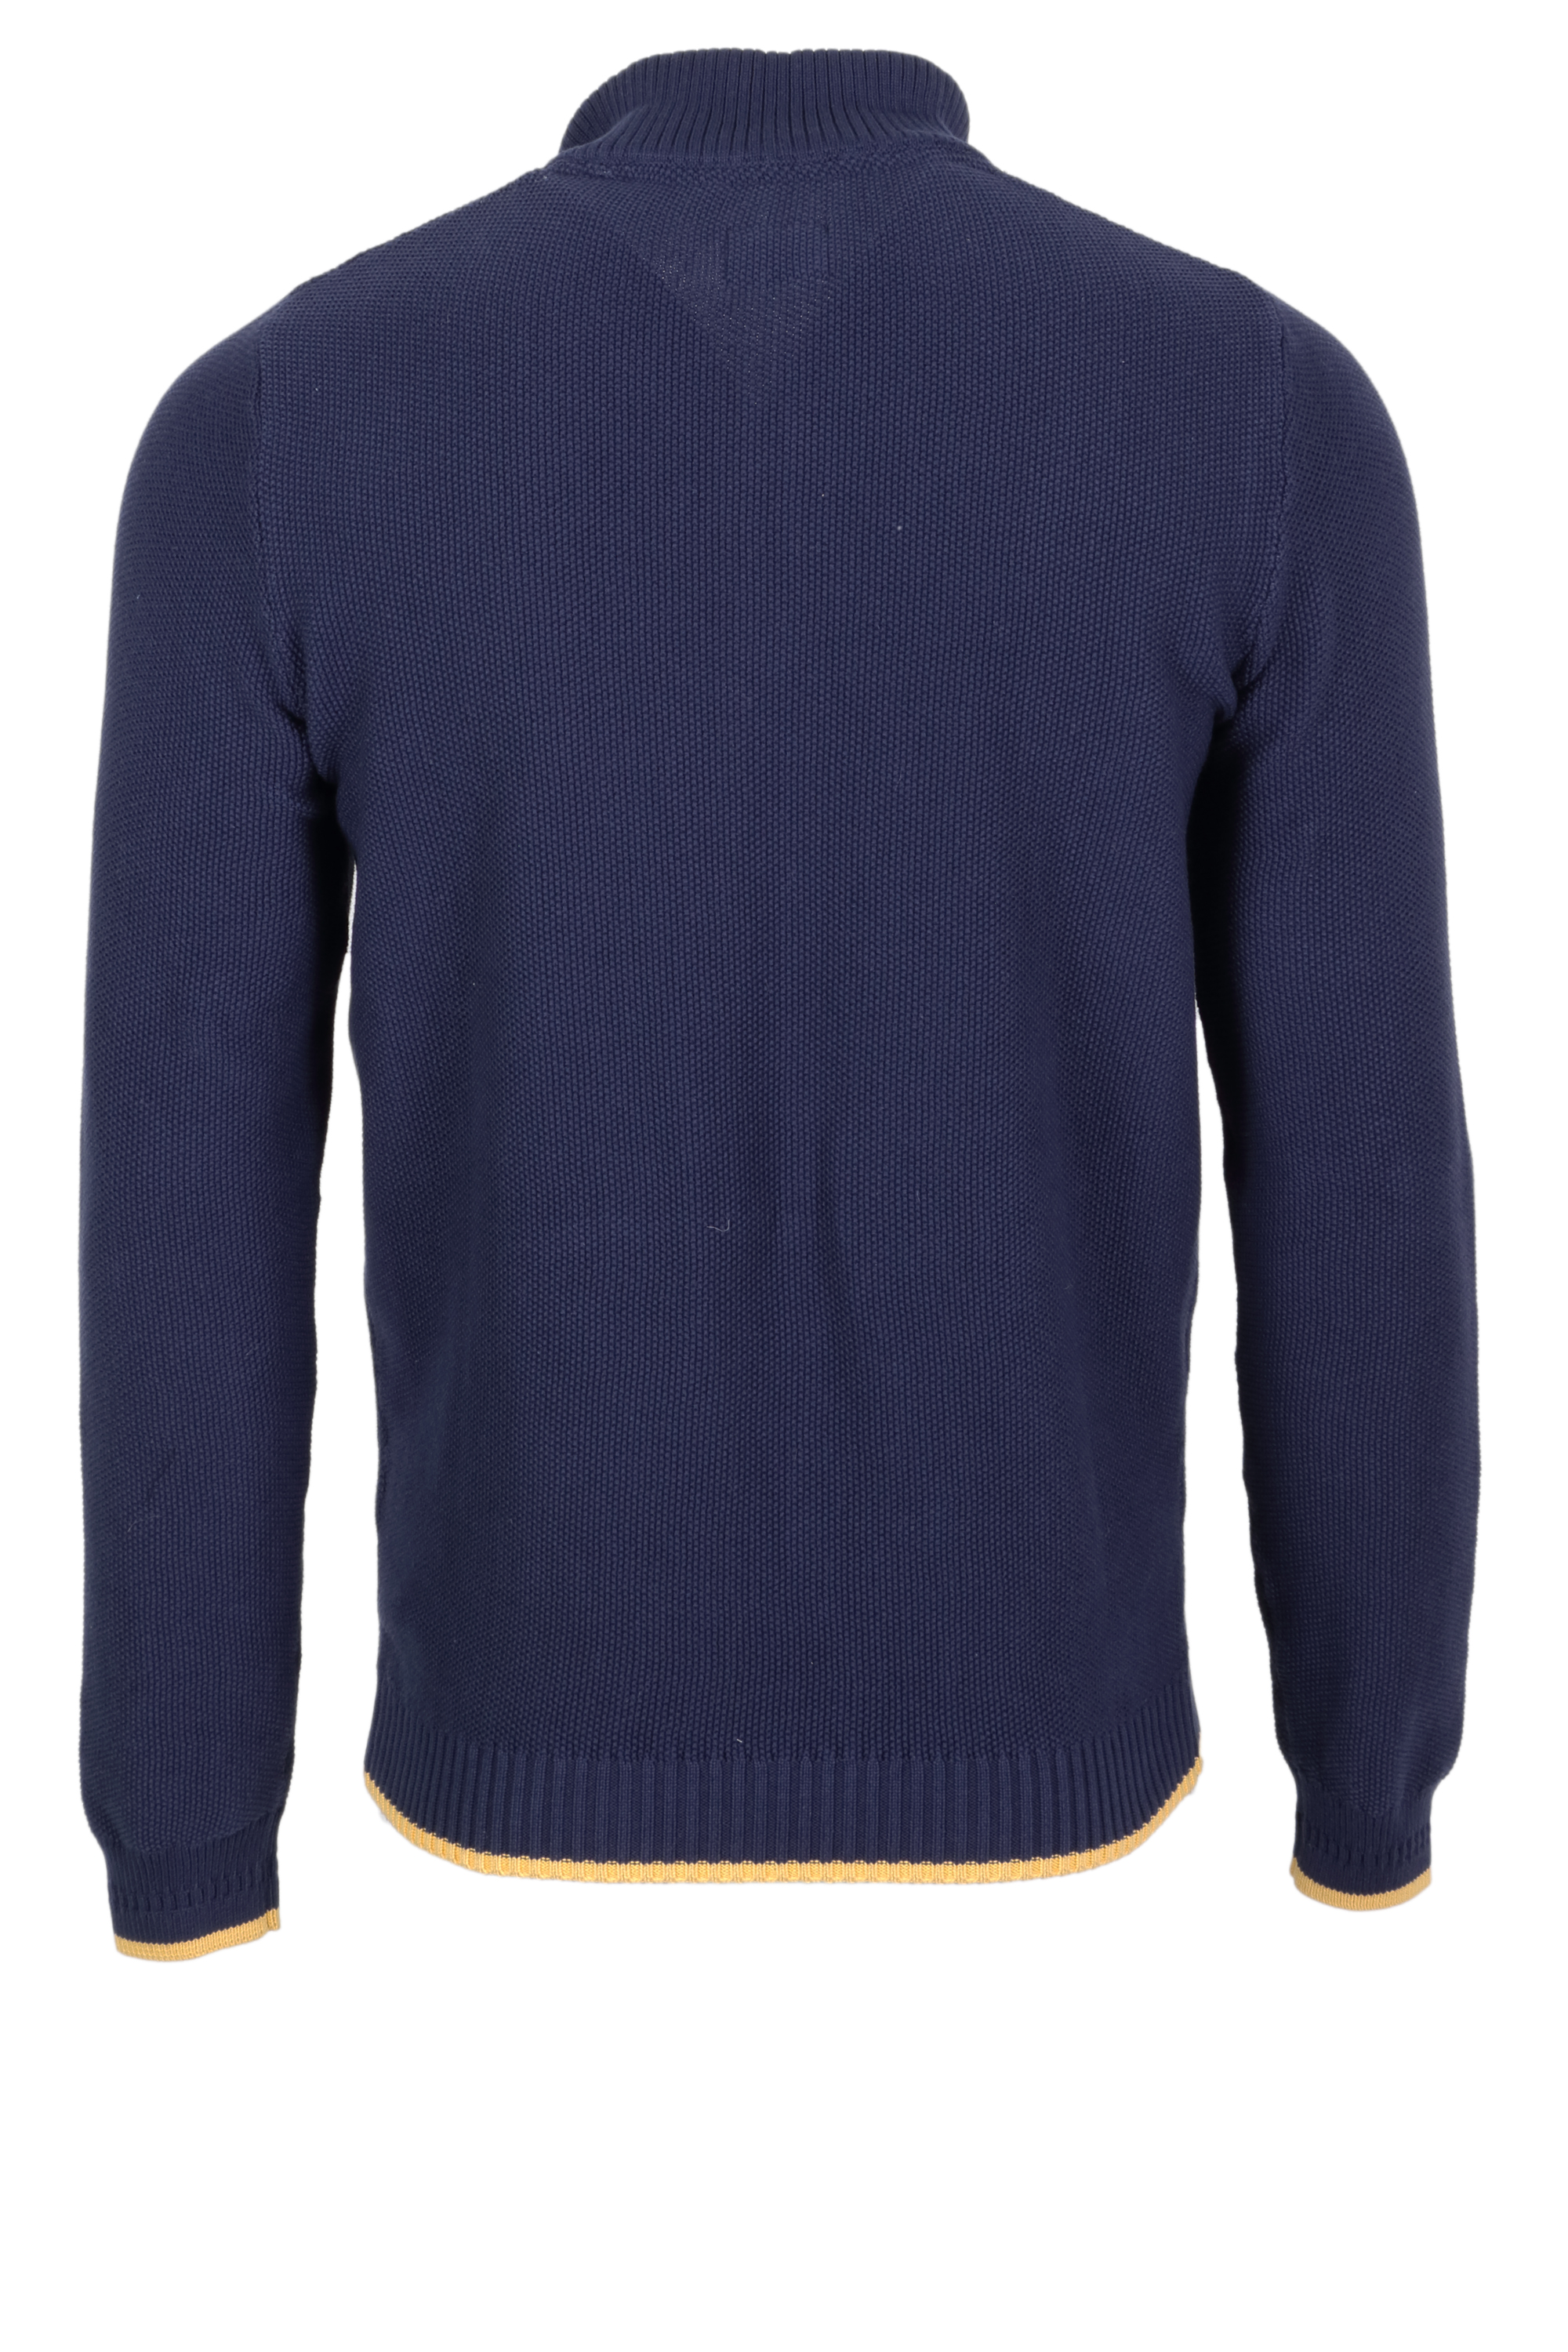 New Zealand Auckland Pullover Wairepo Arm - navy 3XL